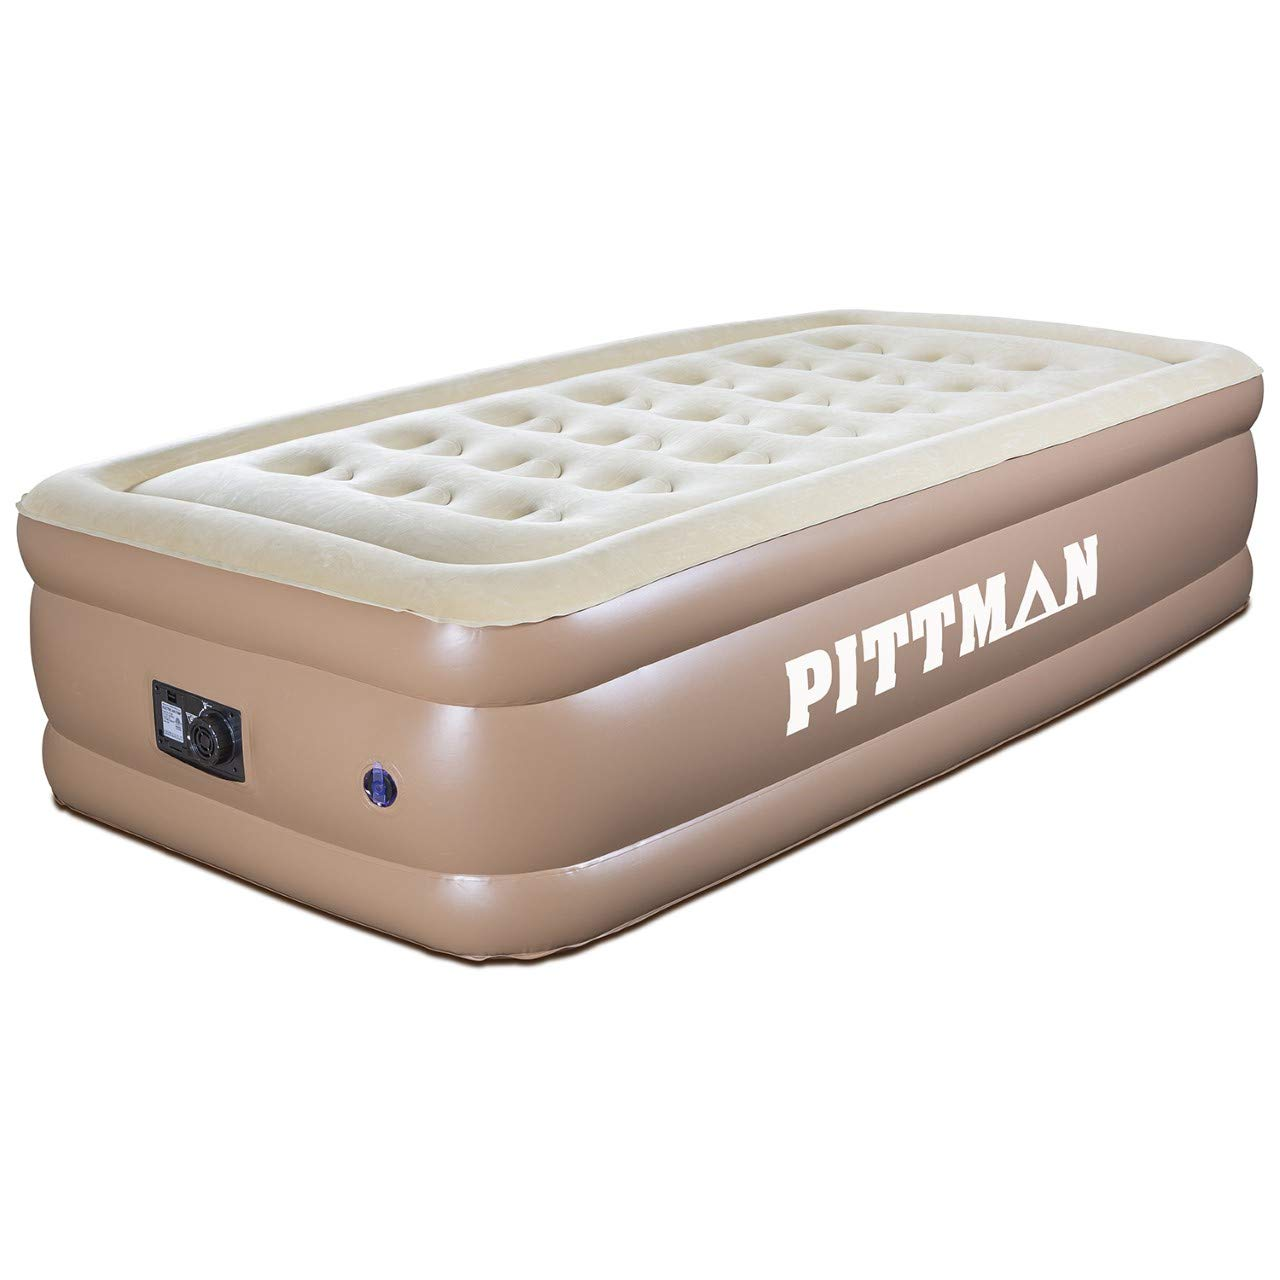 18 Inflatable Mattress with Flocked Top Best Blow Up Mattress Air Bed for Guests and Traveling Pittman Outdoors Twin Air Mattress with Built in Pump